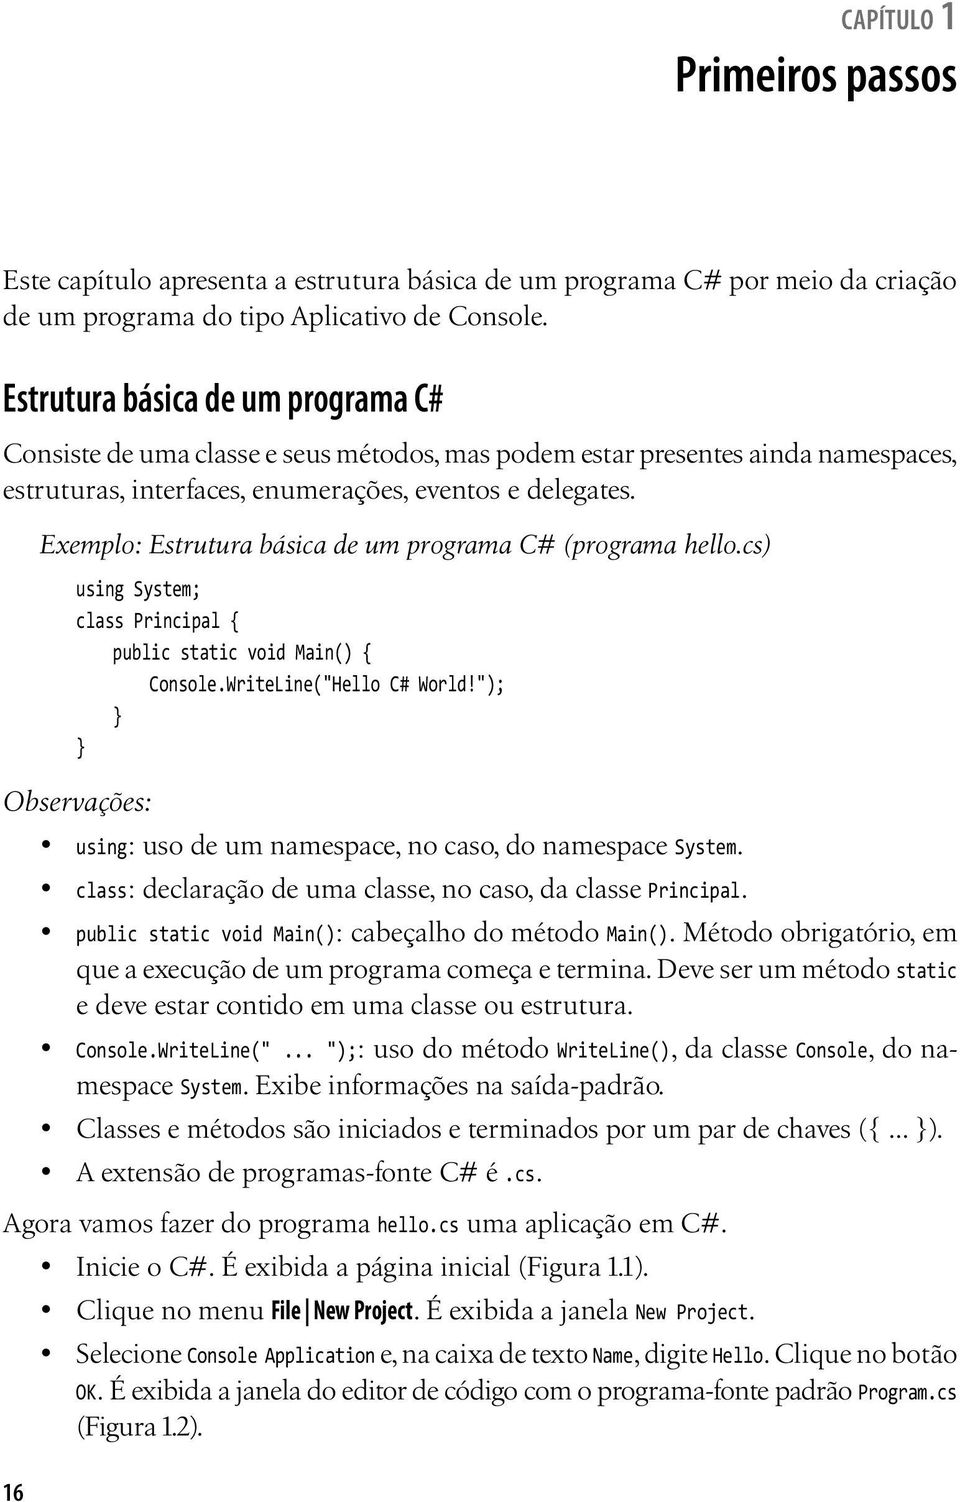 "16 Exemplo: Estrutura básica de um programa C# (programa hello.cs) using System; class Principal { public static void Main() { Console.WriteLine(""Hello C# World!"